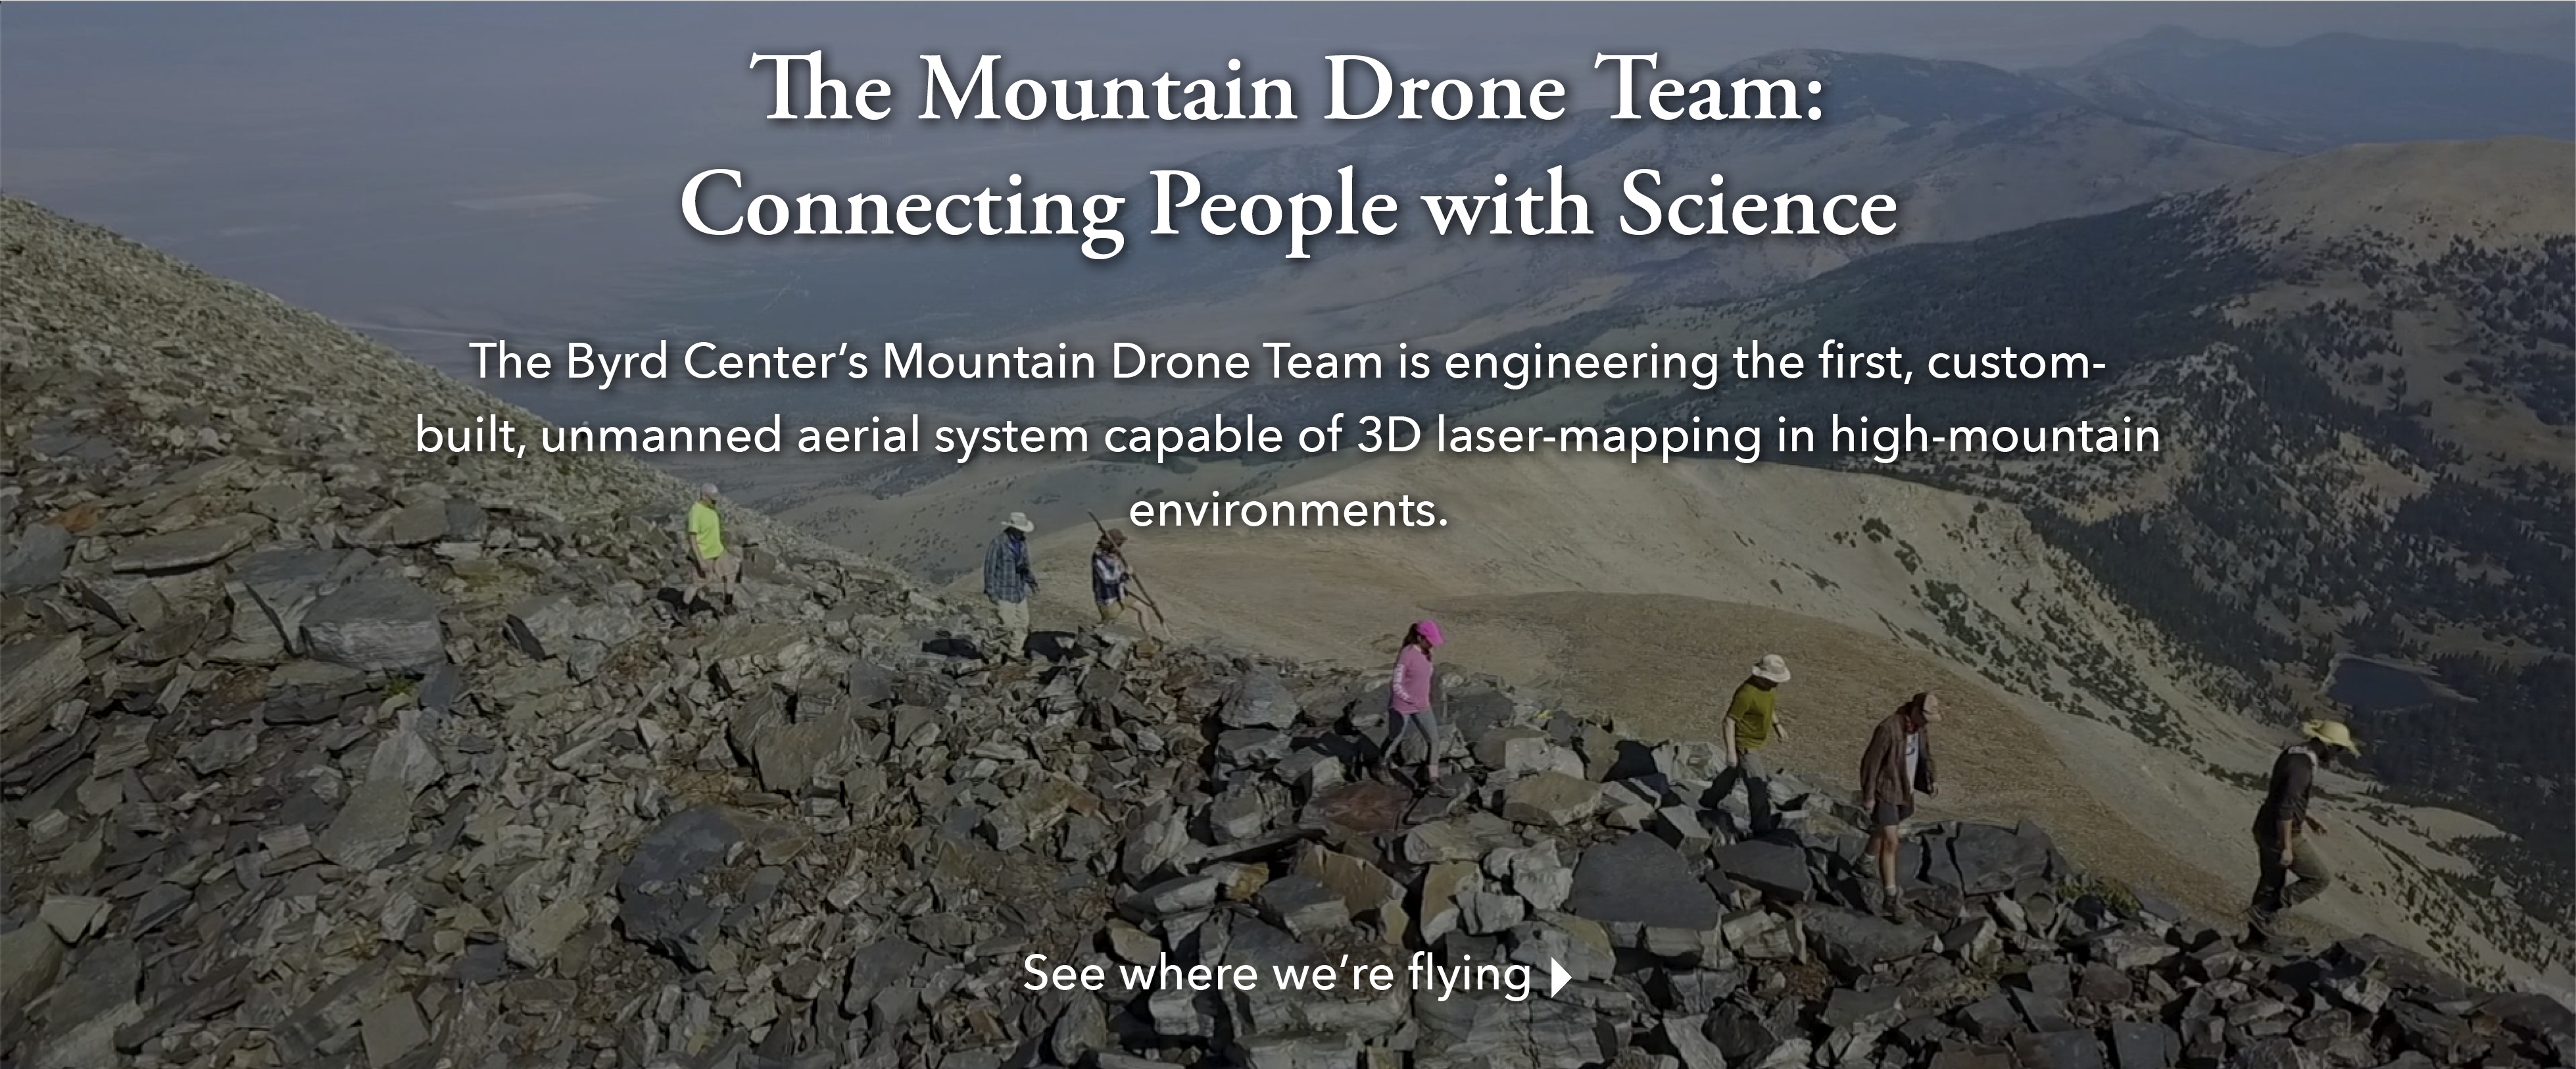 The Mountain Drone Team: Connecting People with Science